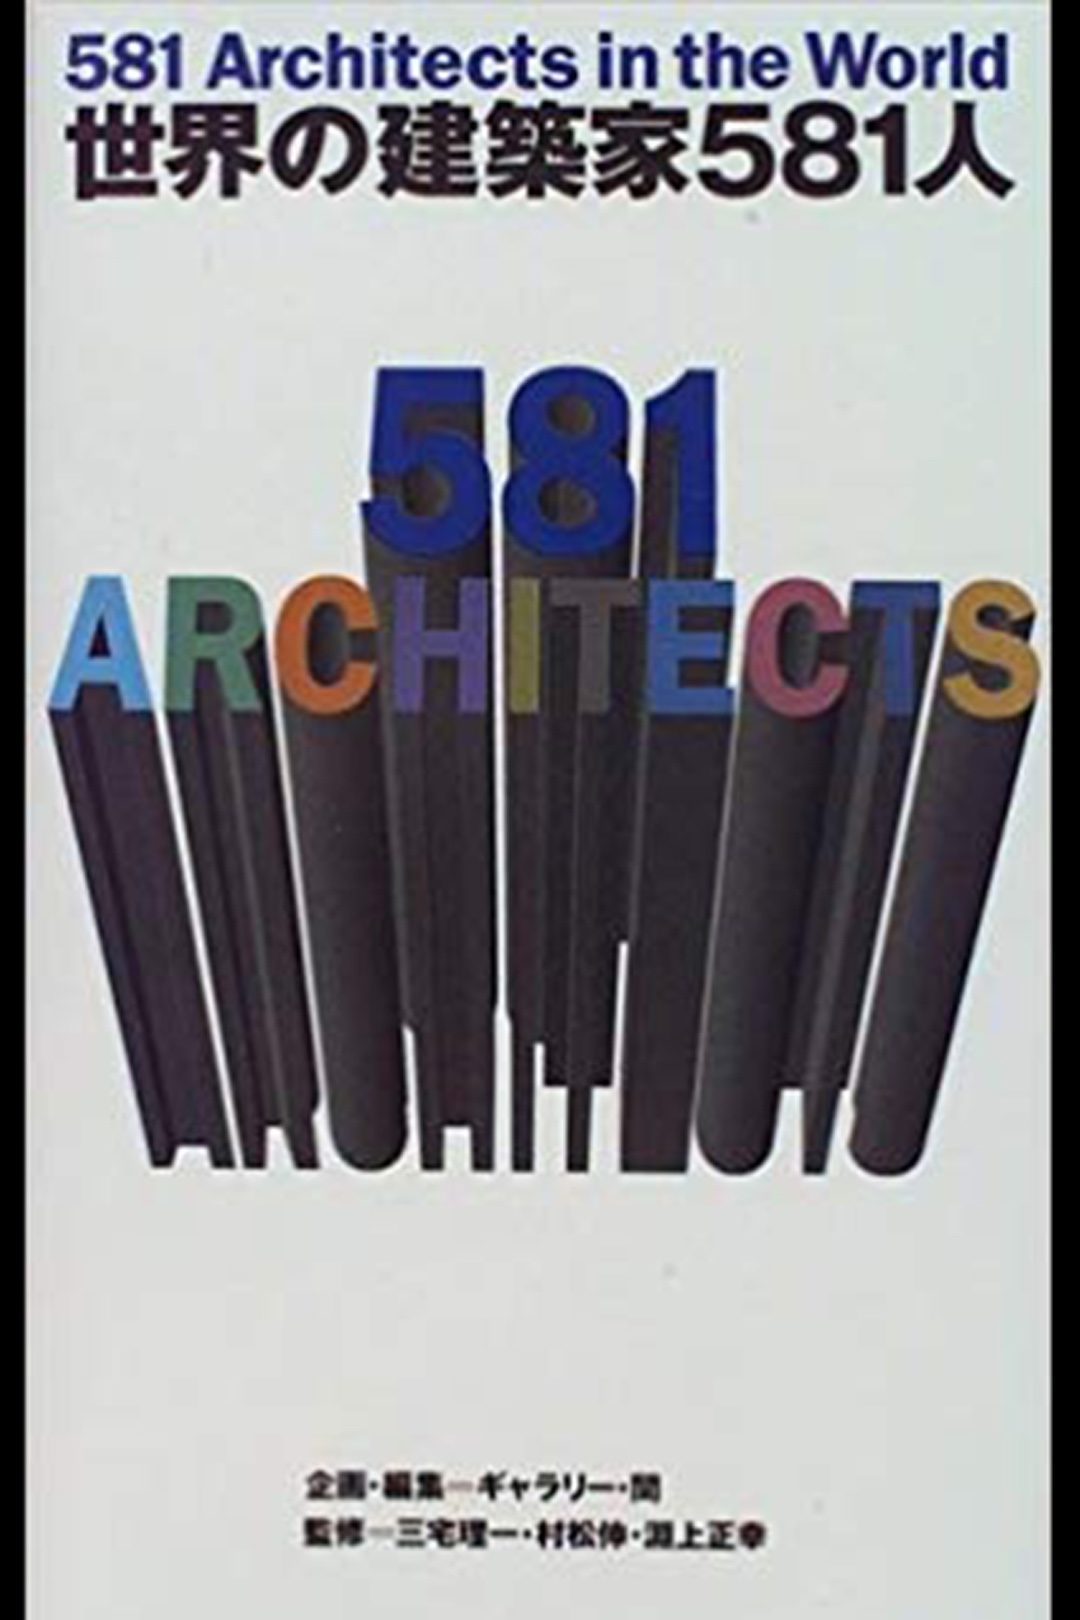 581 Architects in the World